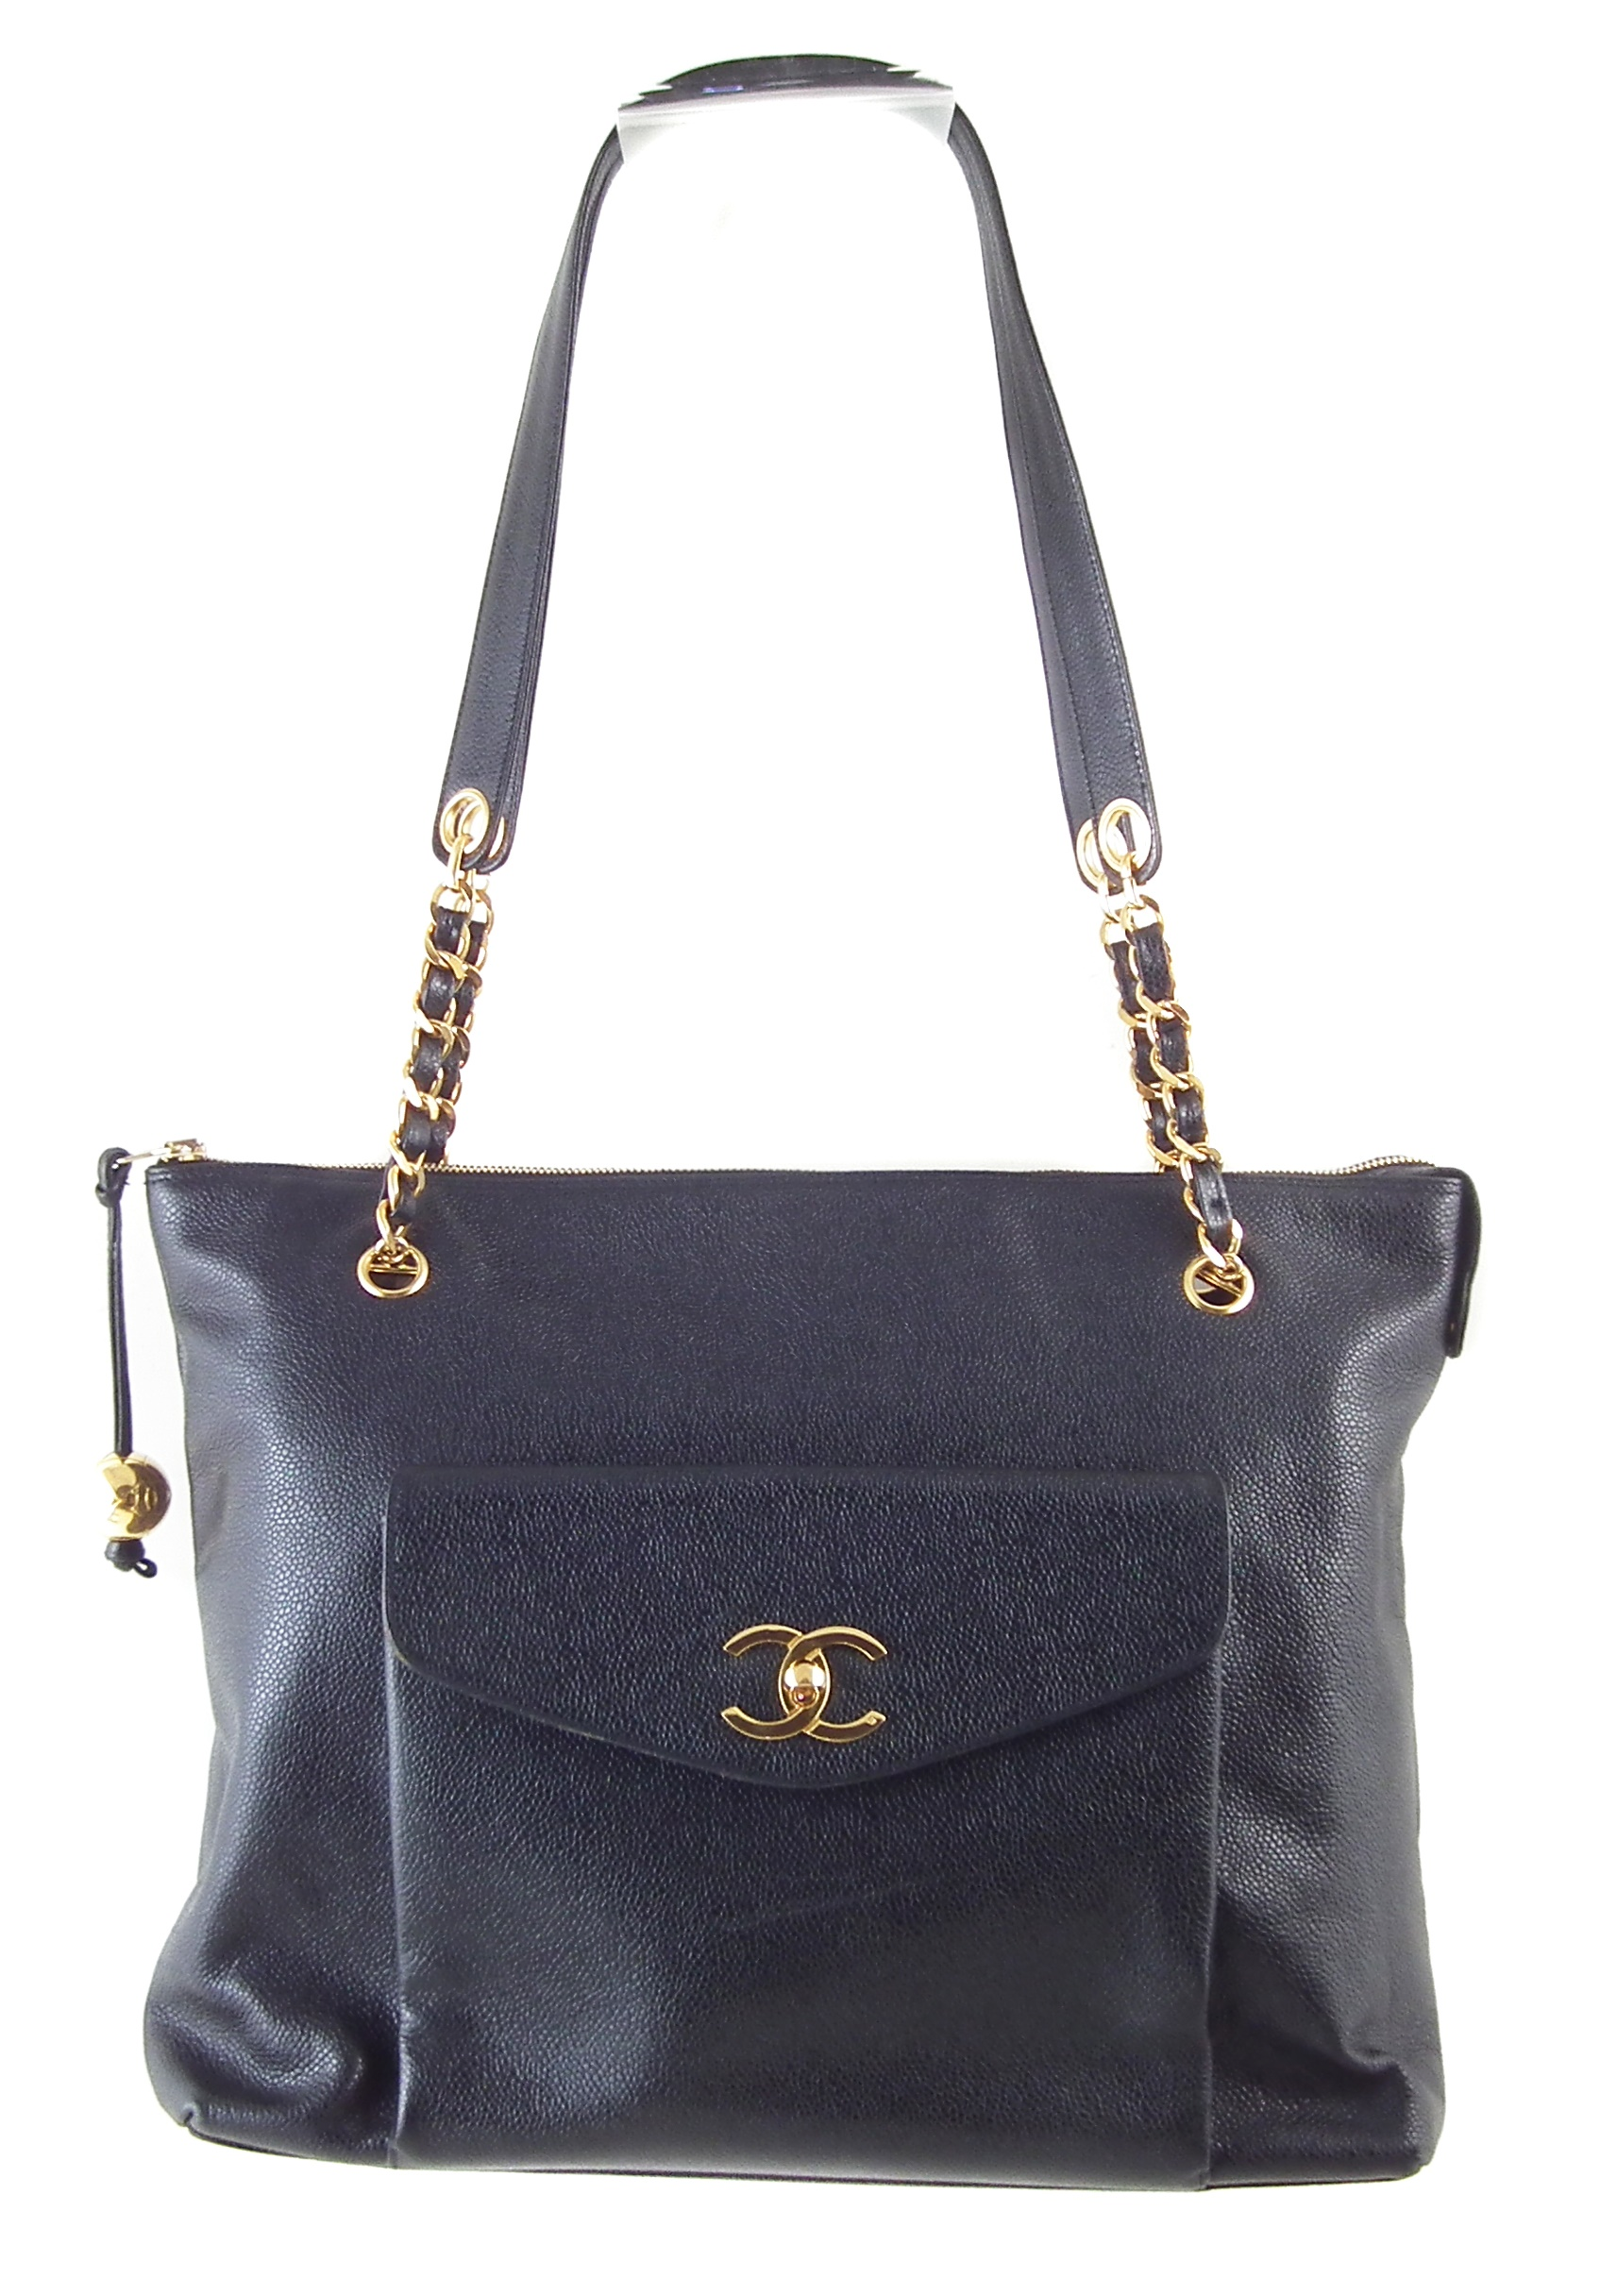 A Chanel CC Turnlock Shopping tote handbag, circa 1991-4, the black caviar leather, with front pocket and gold-tone double 'C' monogram, double woven leather and gold-tone straps with leather shoulder panels, lambskin leather lining, zip compartment, serial number 2896749, with care card and booklet. Dimensions 36 x 30 x 11cm.